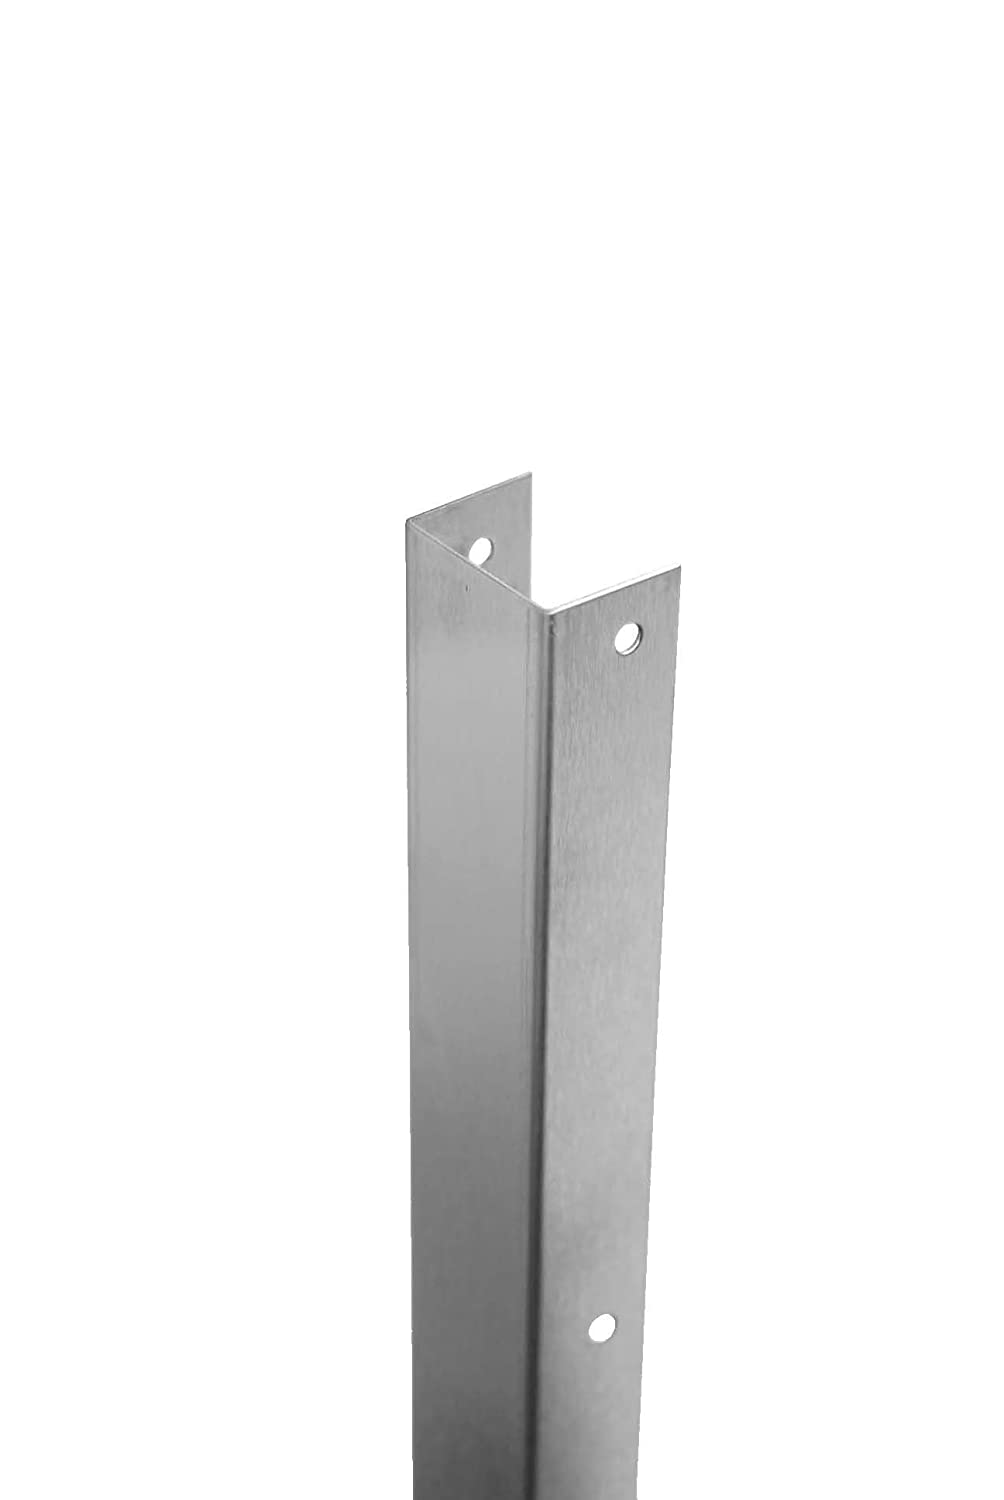 3//64 Thick Don-Jo 1298 Stainless Steel 300 Scotch Mount U Guard Satin Stainless Steel Finish 42 Length